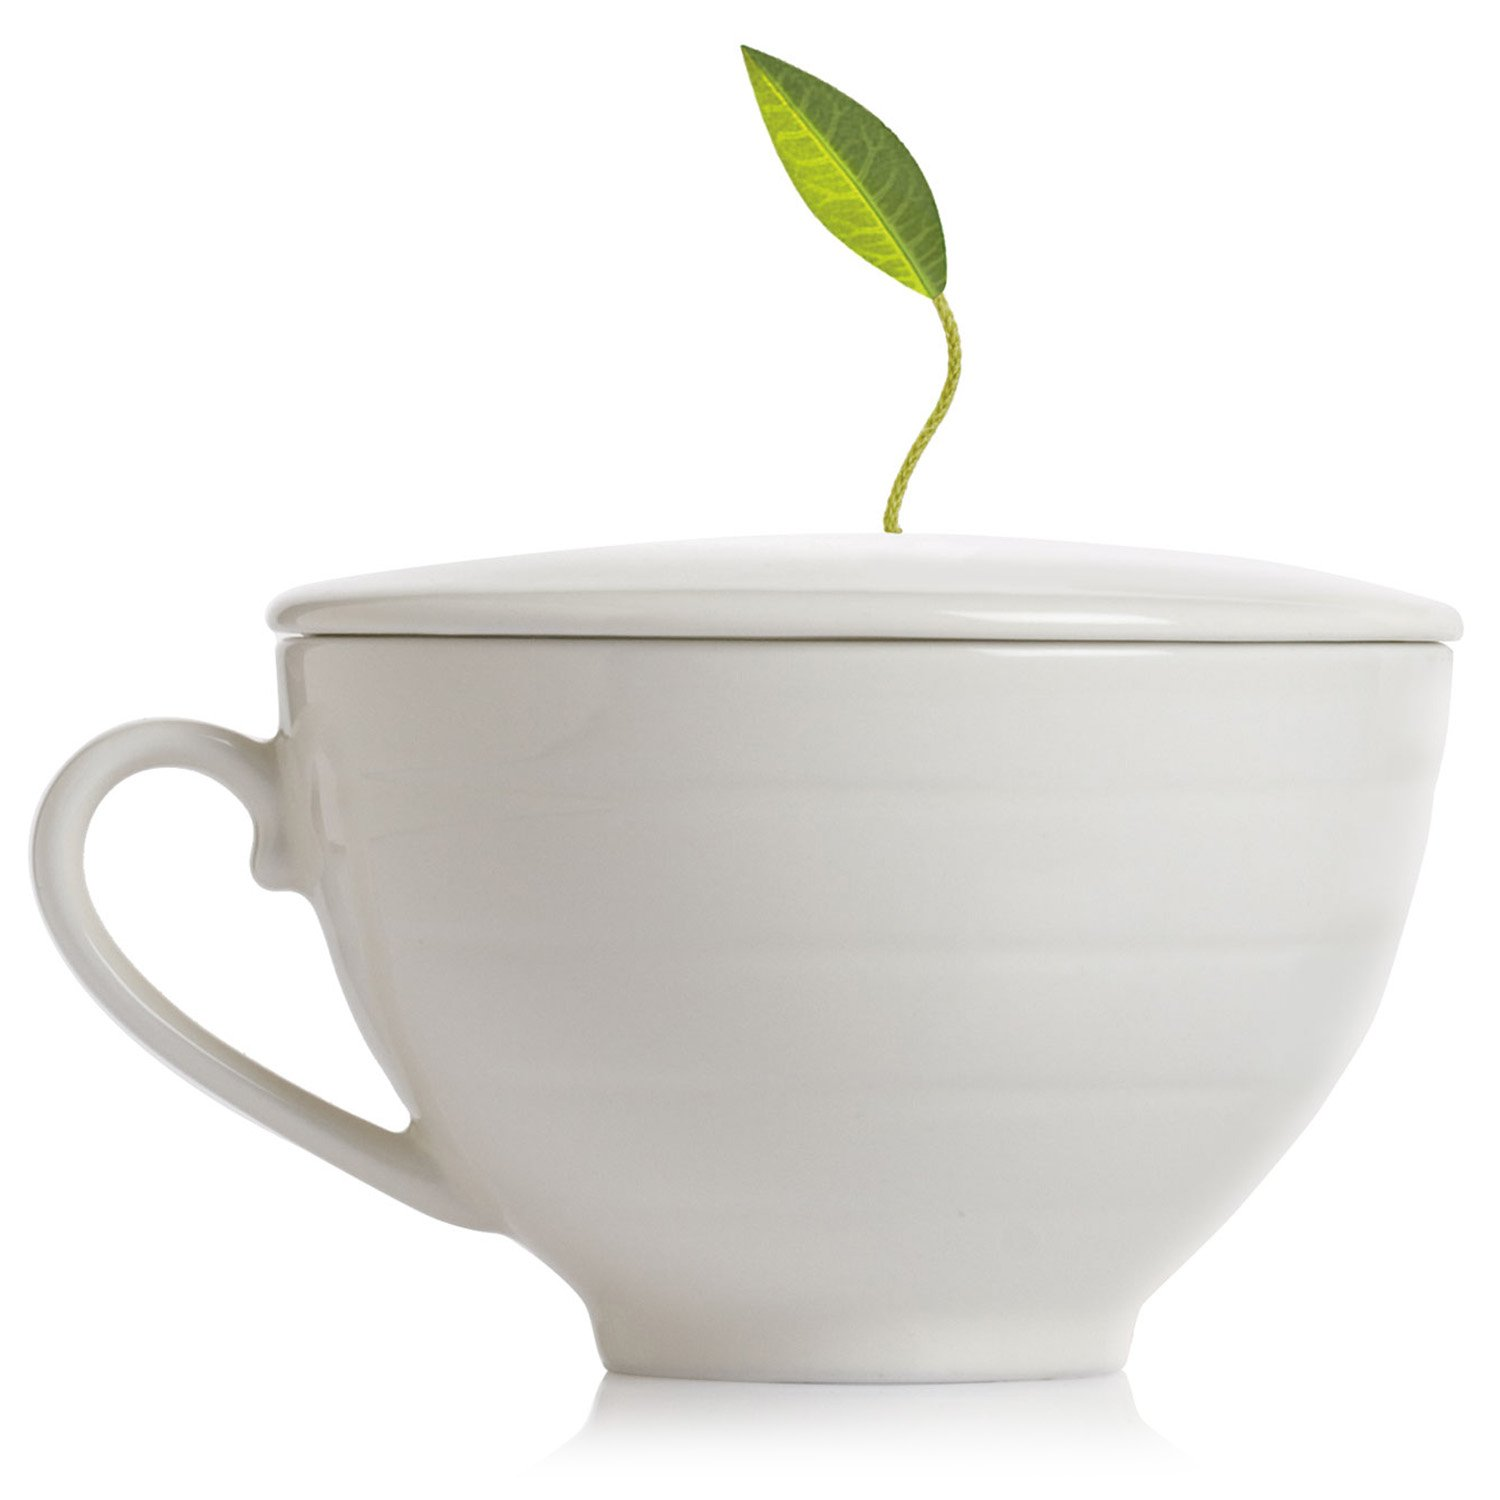 Tea Forte Cafe Cup Porcelain Tea Cup with Custom Cover for Steeping